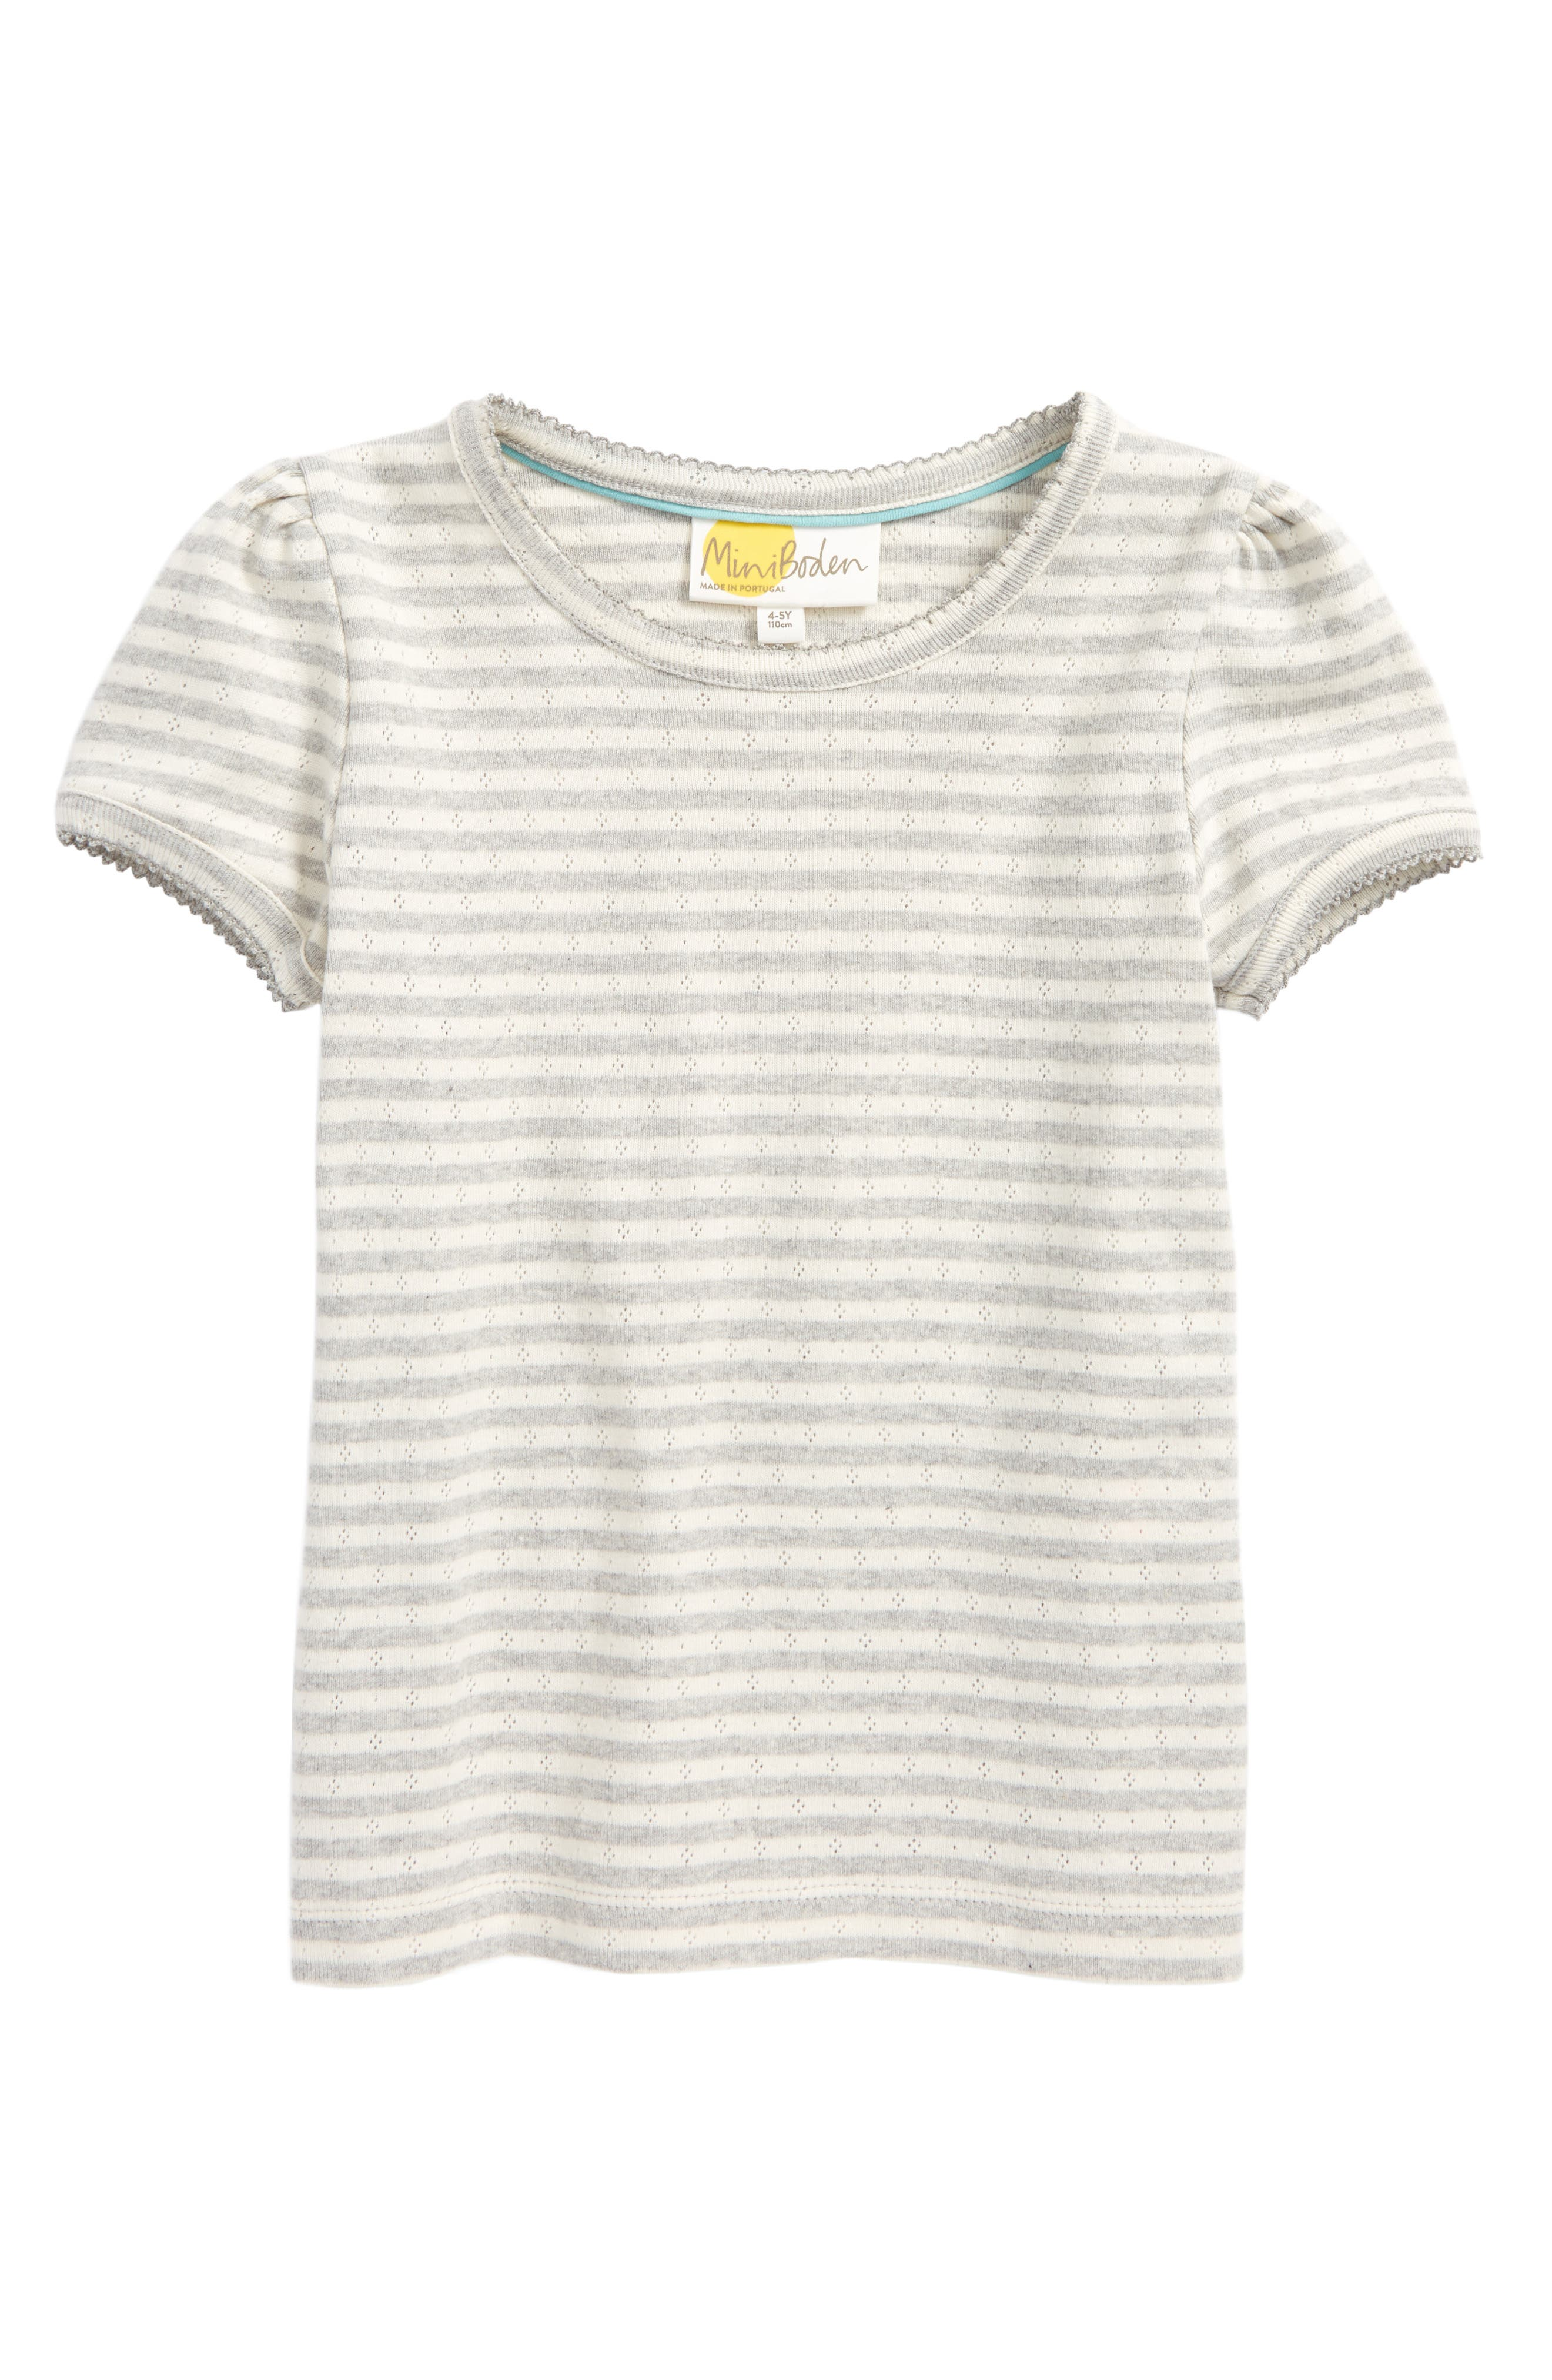 Pointelle Tee,                             Main thumbnail 1, color,                             Ecru/ Grey Marl